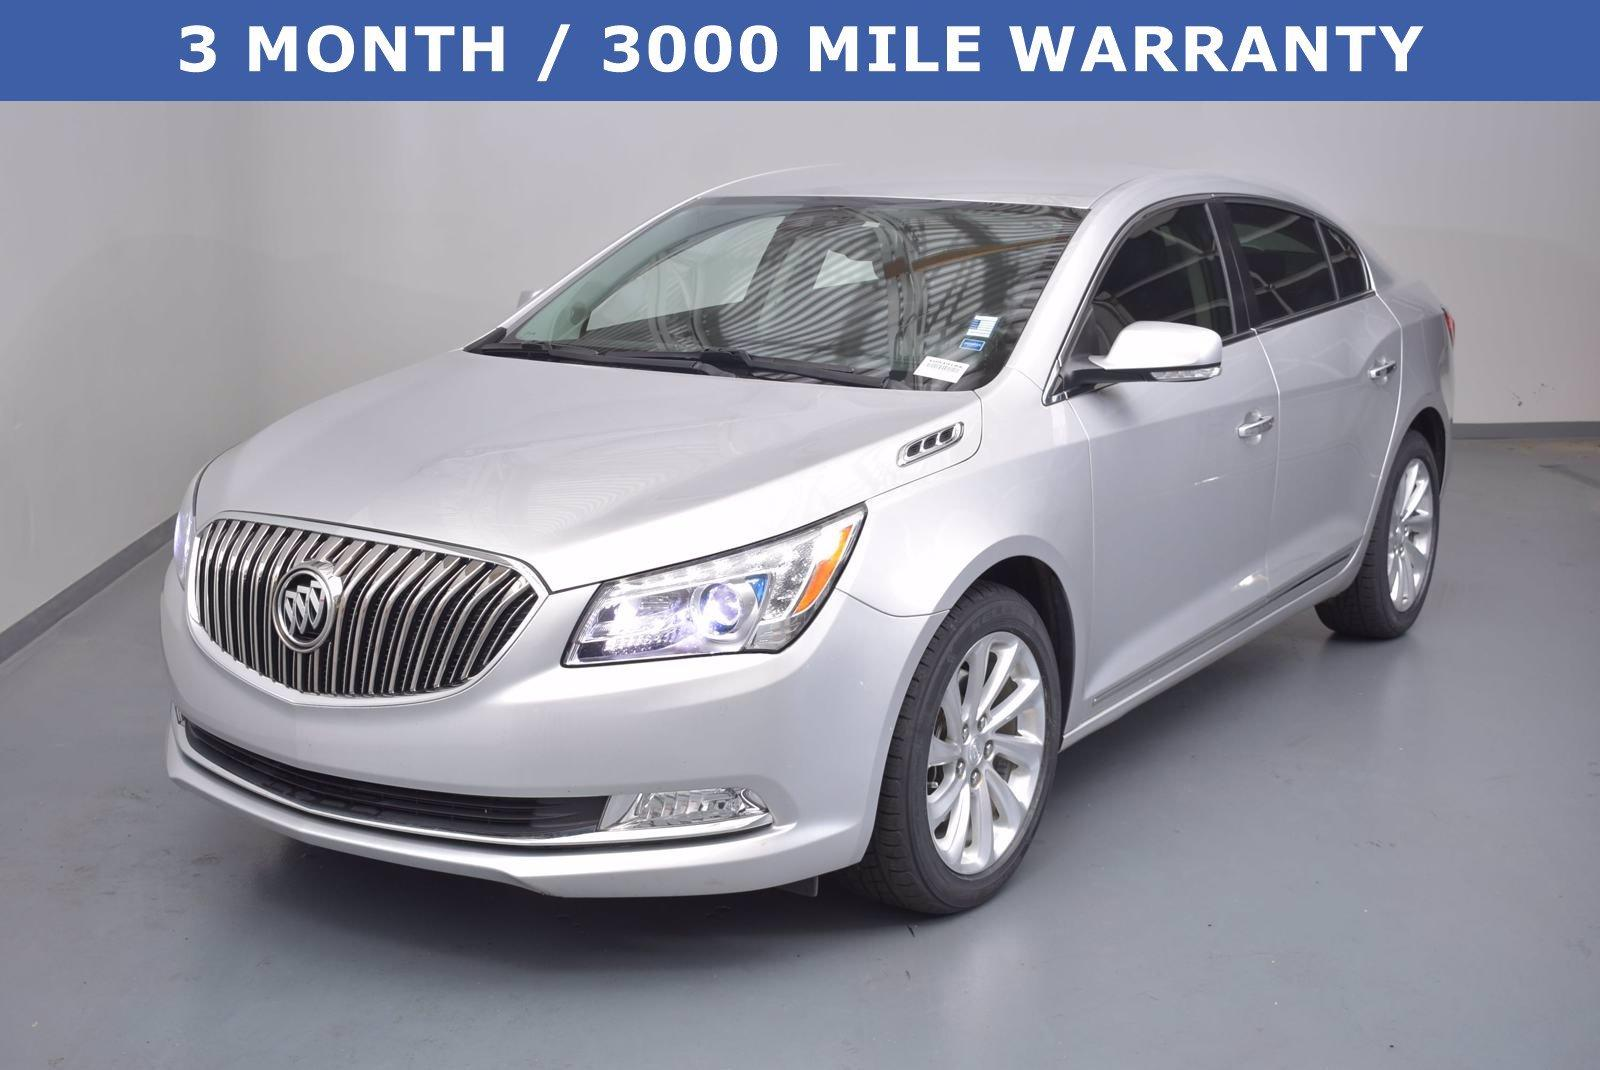 2016 Buick LaCrosse Vehicle Photo in Cary, NC 27511